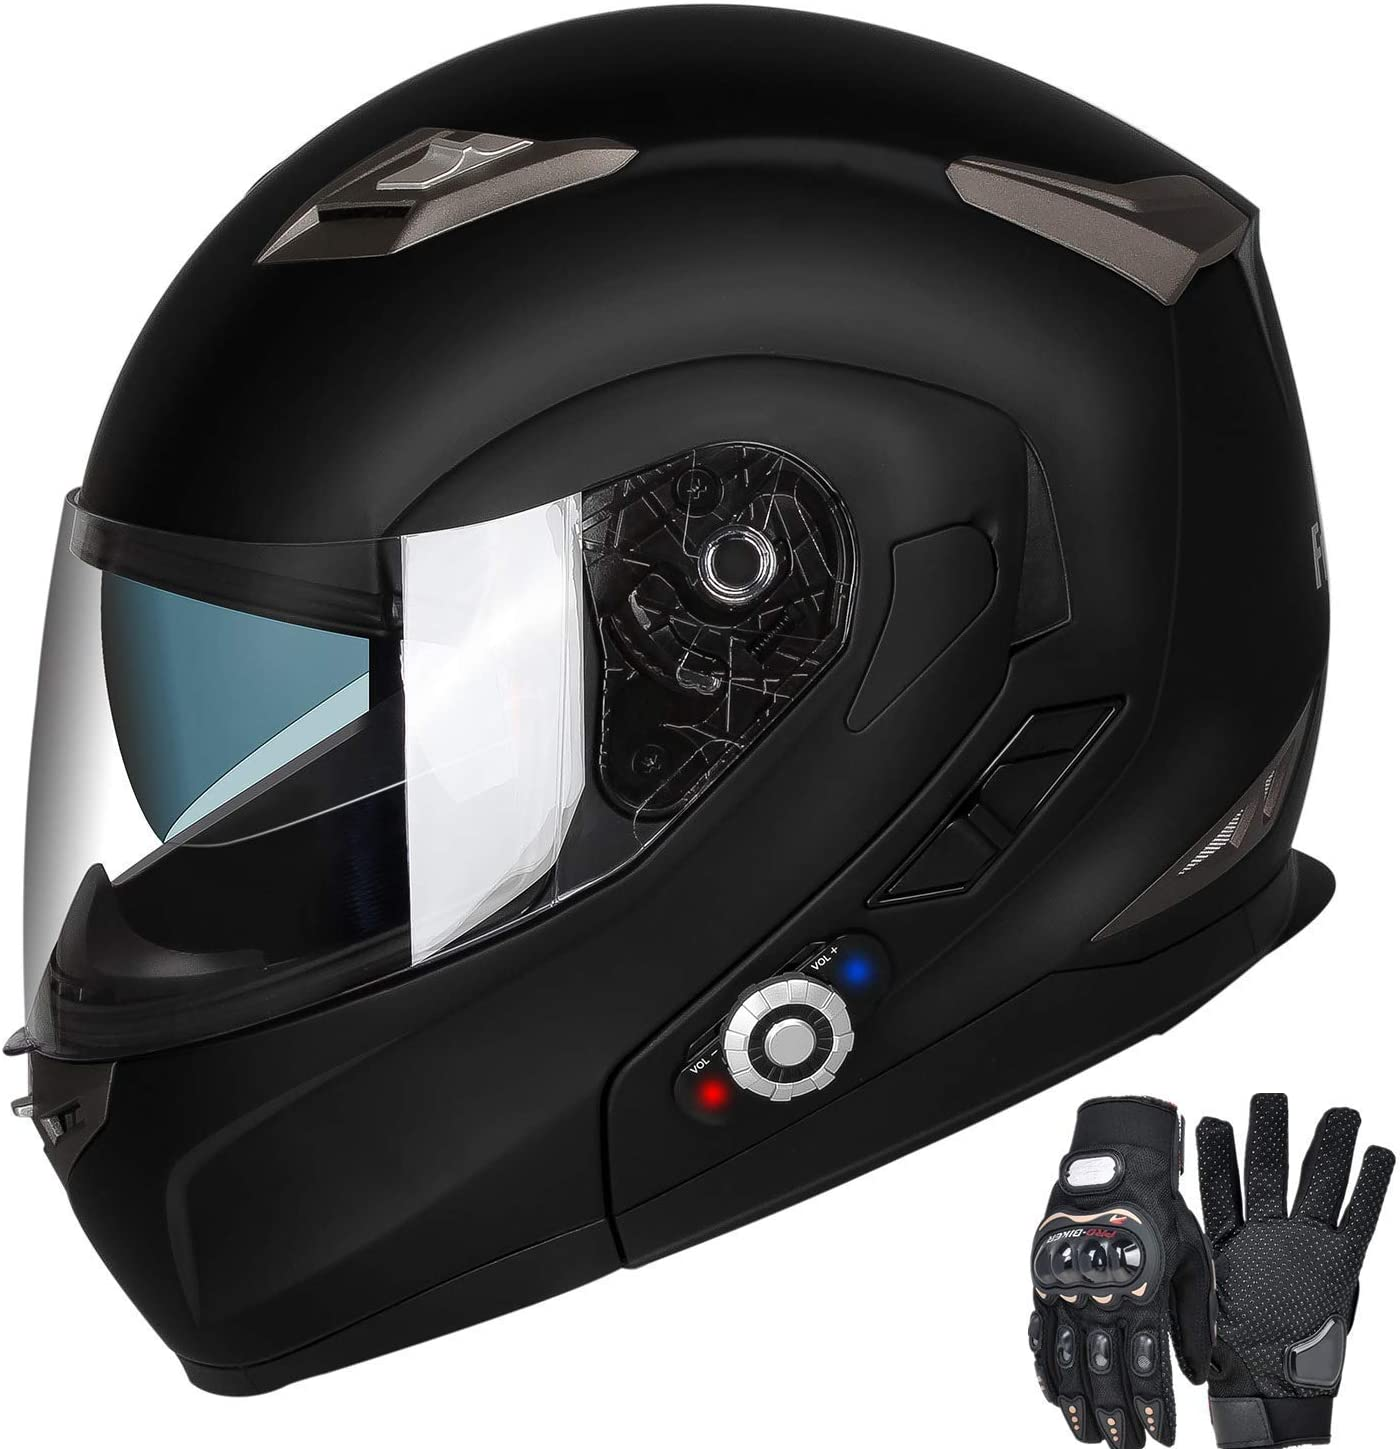 Motorcycle Bluetooth Helmet, FreedConn BM2-S Flip Up Modular Bluetooth Motorcycle Helmet Voice Dial/Hands-Free Call/ 500M/ 2-3 Riders/ MP3/ FM/DOT Motorcycle Helmet with Bluetooth 3.0